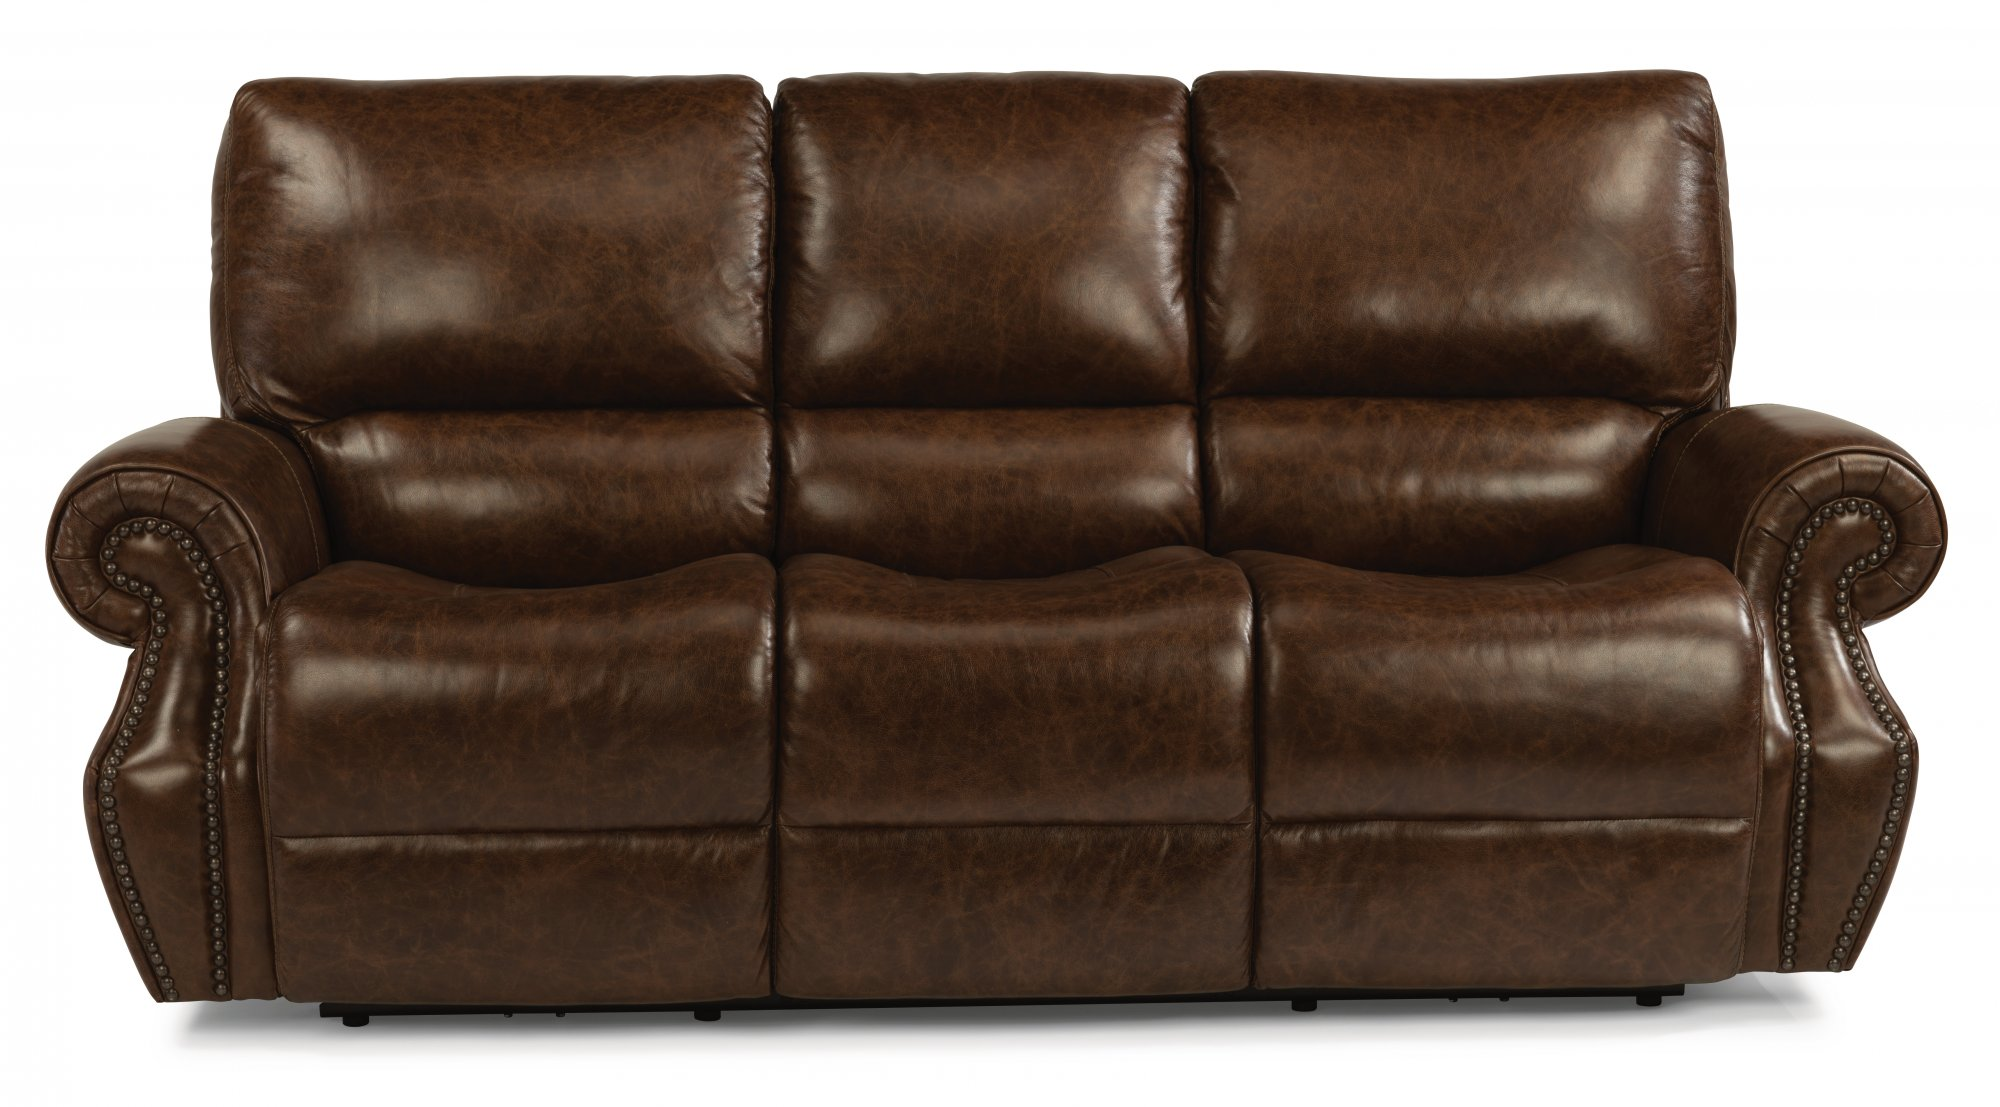 Awe Inspiring Flexsteel 1583 62Ph Colton Leather Power Reclining Sofa Dailytribune Chair Design For Home Dailytribuneorg